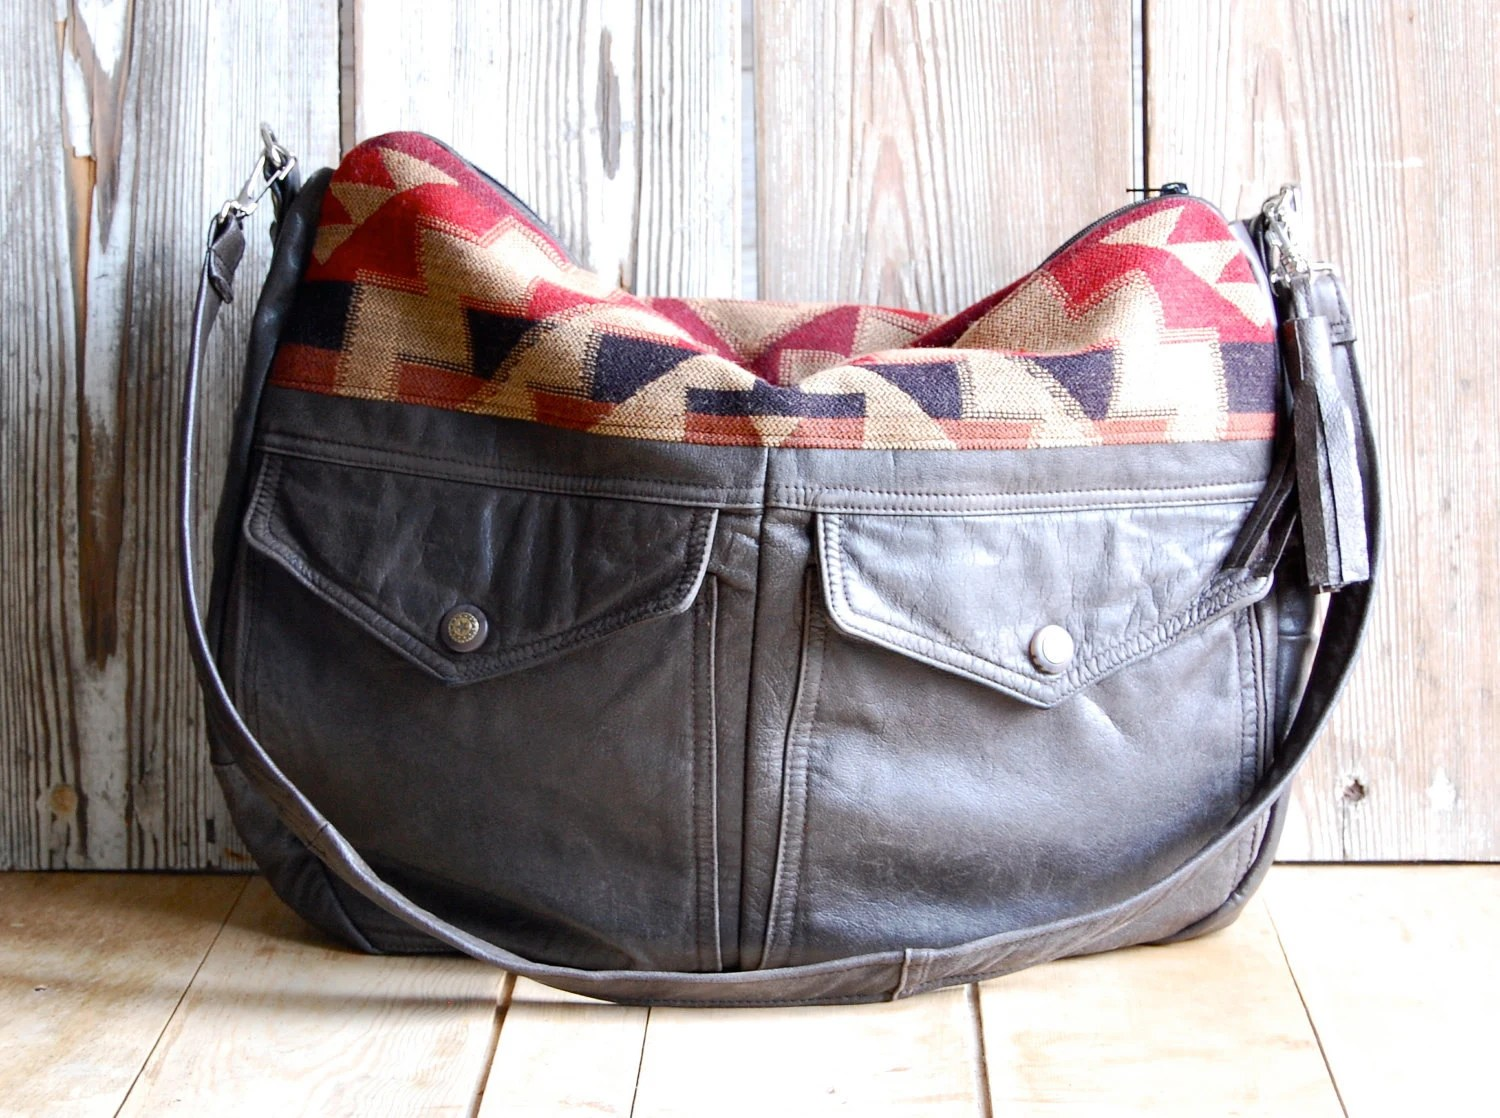 Tundra in Dark Brown Leather and Navajo Fabric